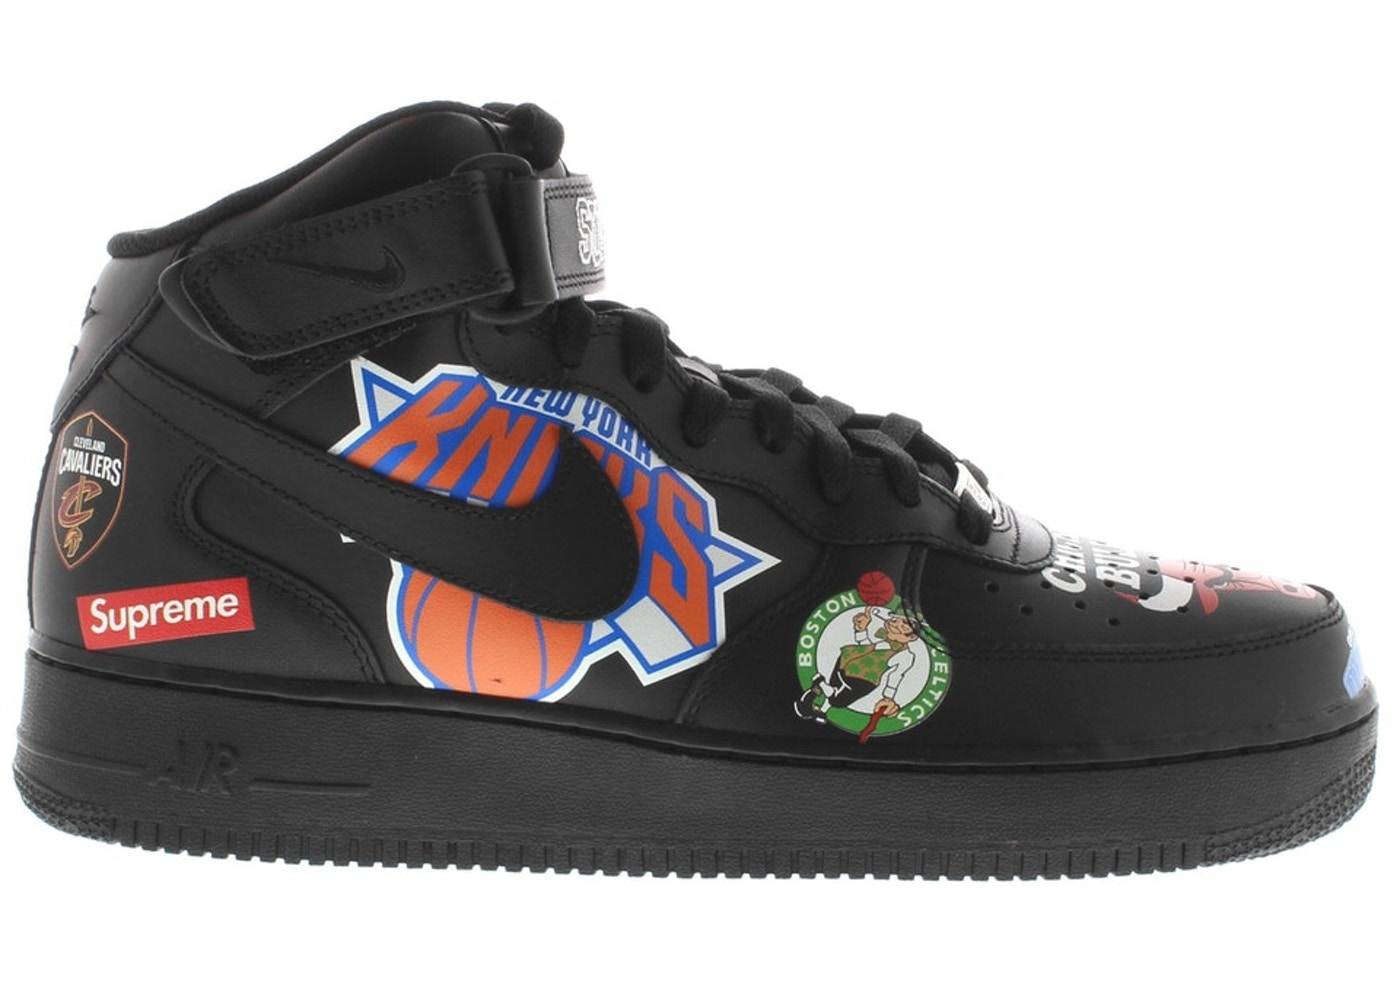 on sale 2e4fa 09551 Air Force 1 Mid Supreme NBA Black